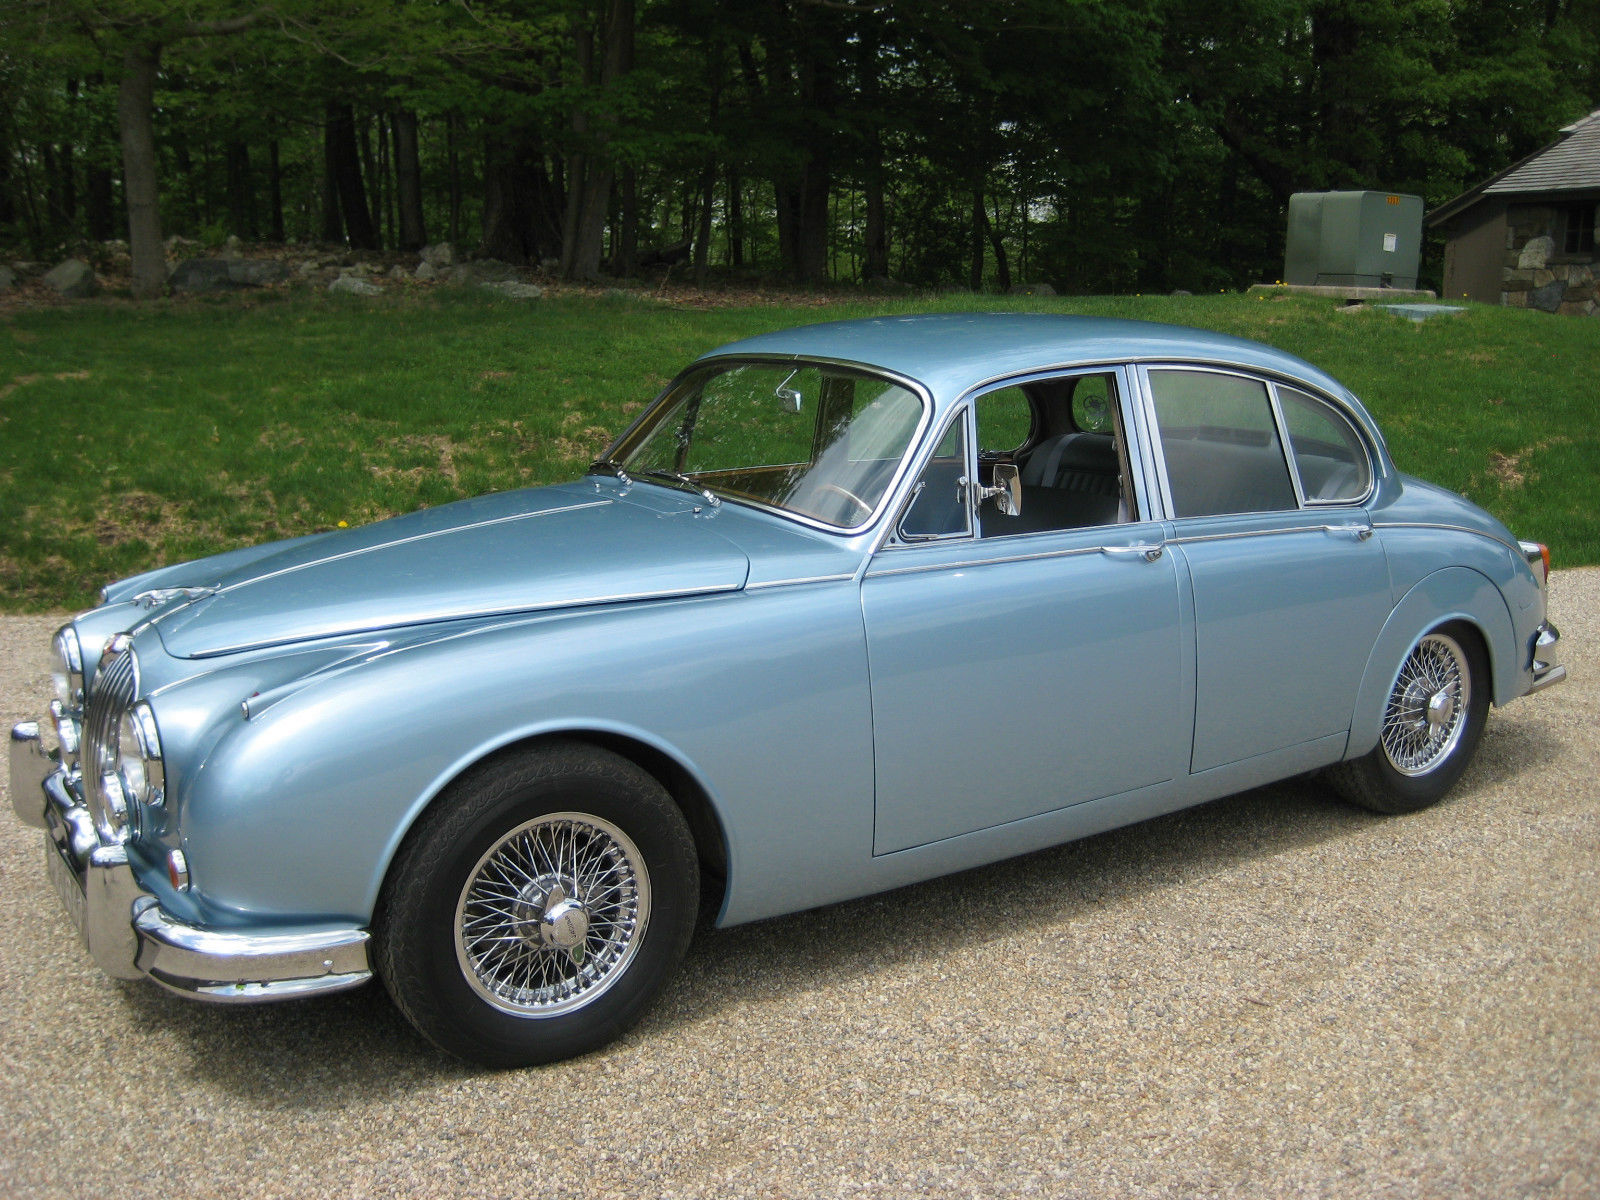 1963 jaguar mk2 3 8 litre 4 door sedan for sale. Black Bedroom Furniture Sets. Home Design Ideas